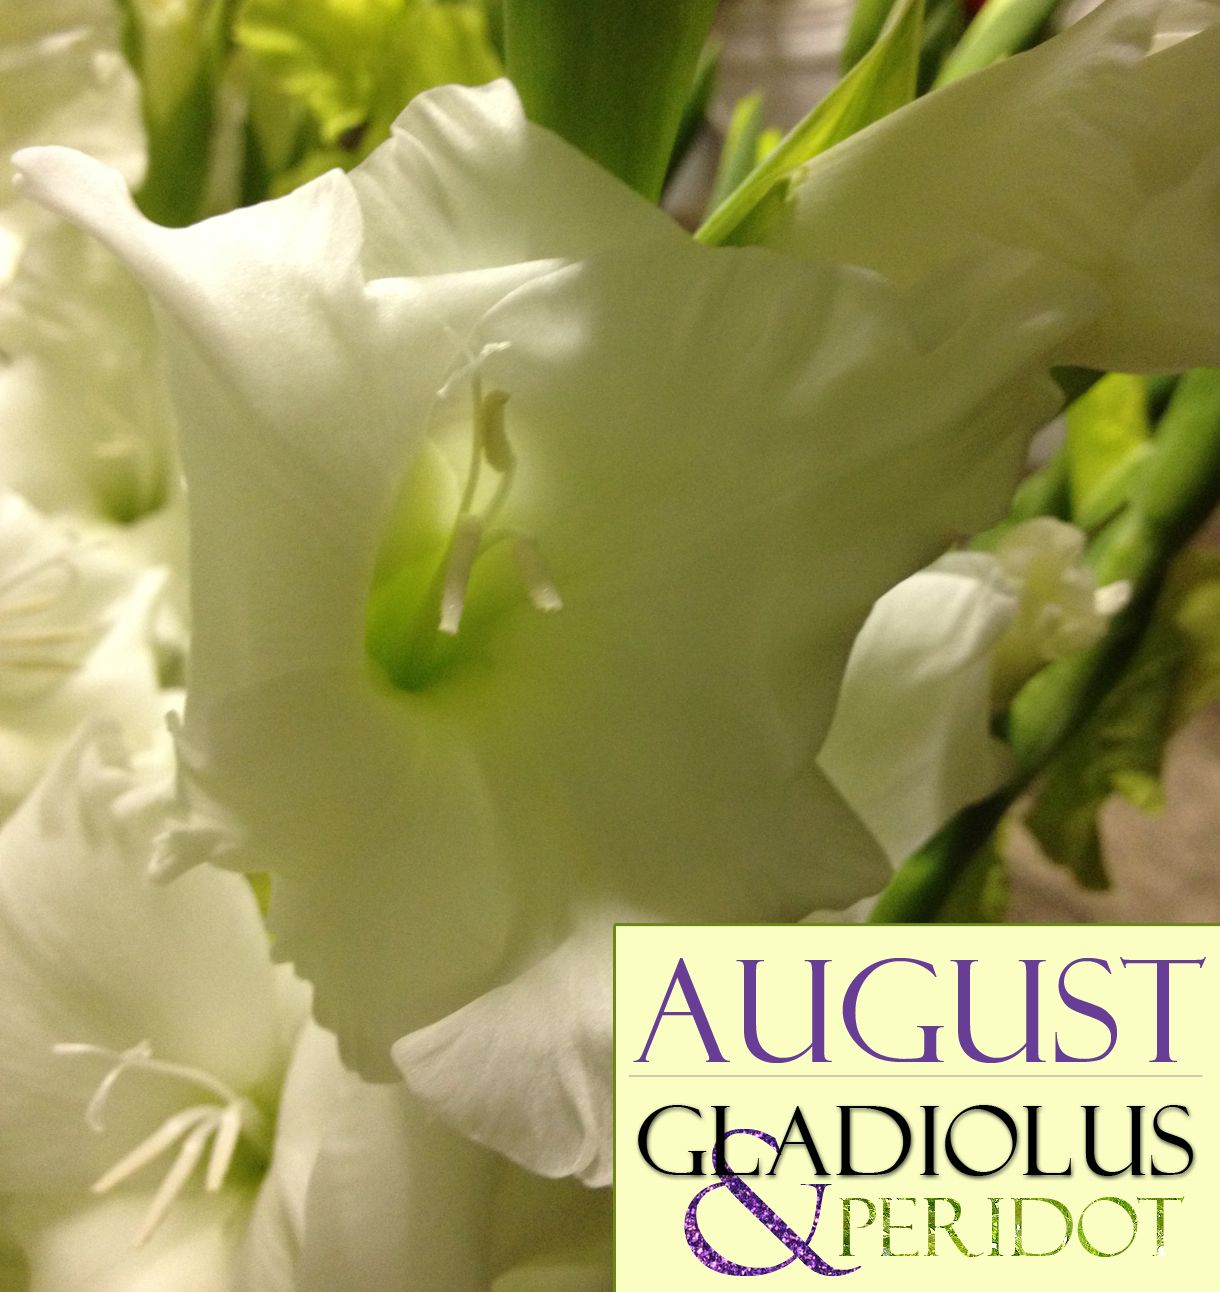 Happy august birthday from freytags florist augusts birth flower austin flower delivery freytags florist austin best austin florist izmirmasajfo